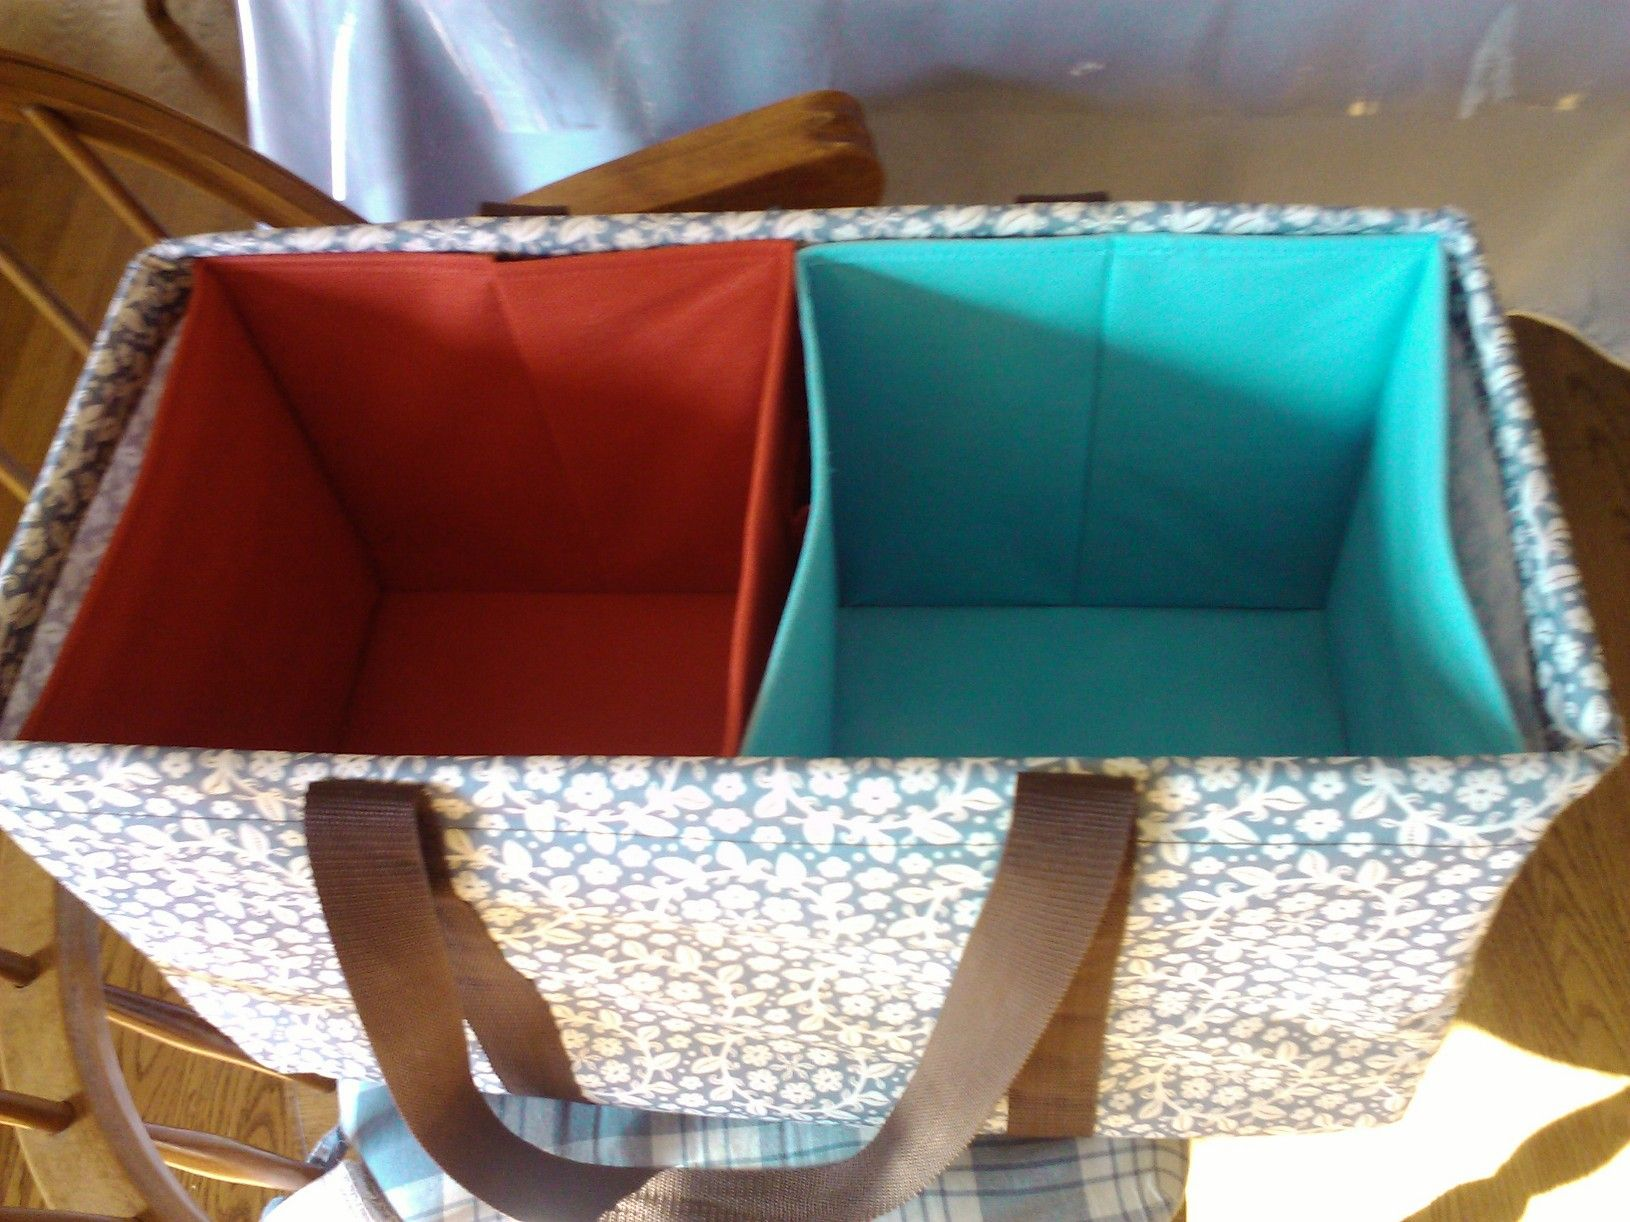 Large tote bags at target - You Can Use Inexpensive Fabric Bins Closet Maid Brand Target Walmart To Temporarily Stiffen Your Large Utility Tote And Keep It Standing